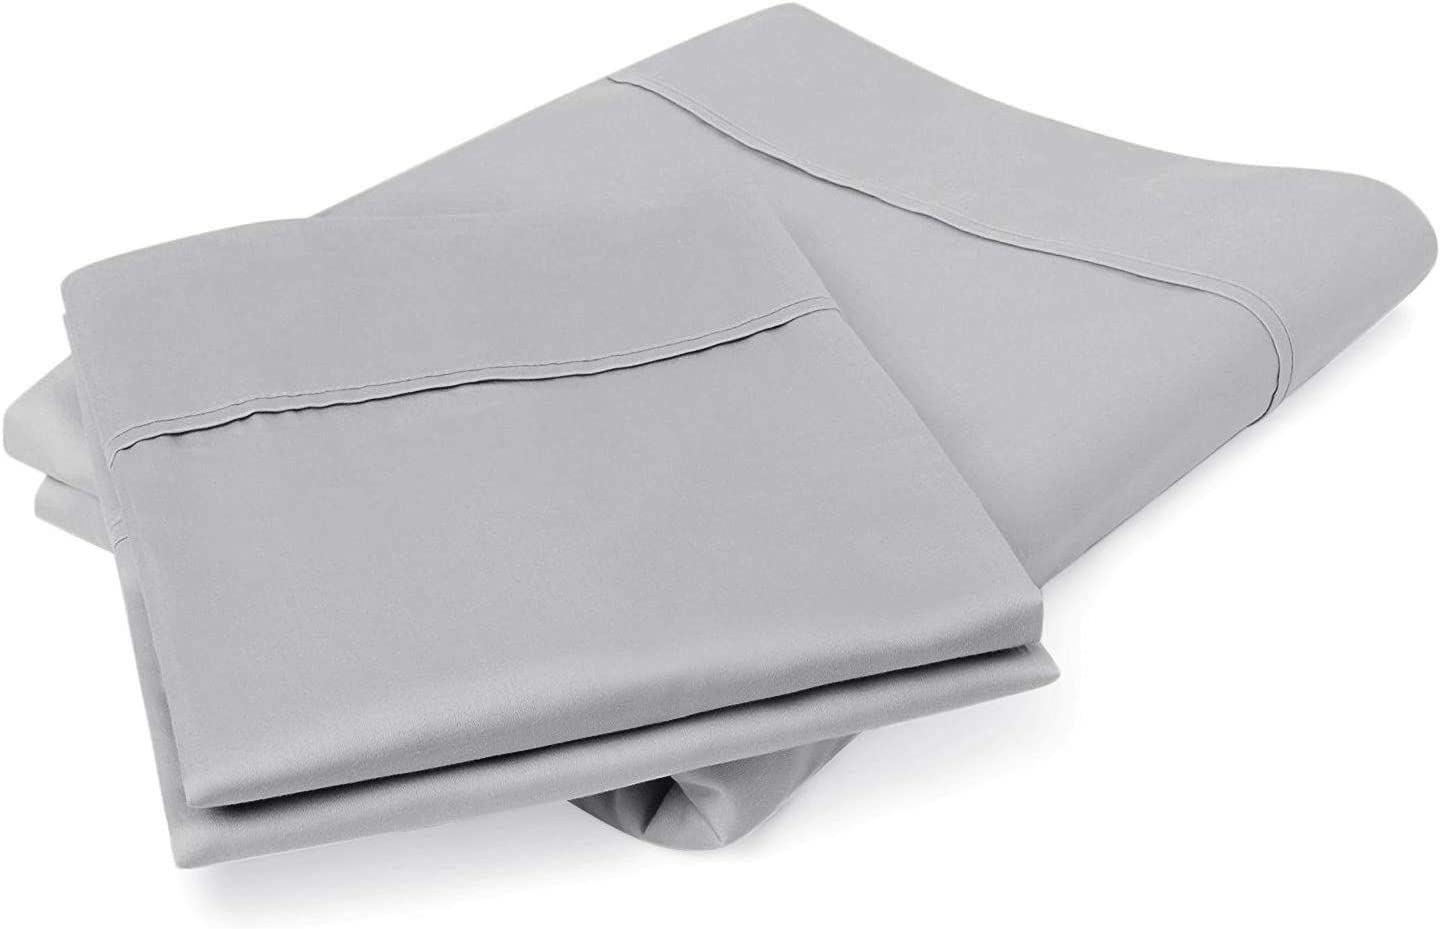 Bluemoon Homes Luxurious Hotel Style 100% Pure Egyptian Cotton 800 -Thread-Count Solid, 2-Piece Pillowcase Set - Single Ply Soft Sateen Weave Premium Yarns (2 PC Standard Pillowcases, Silver Grey)